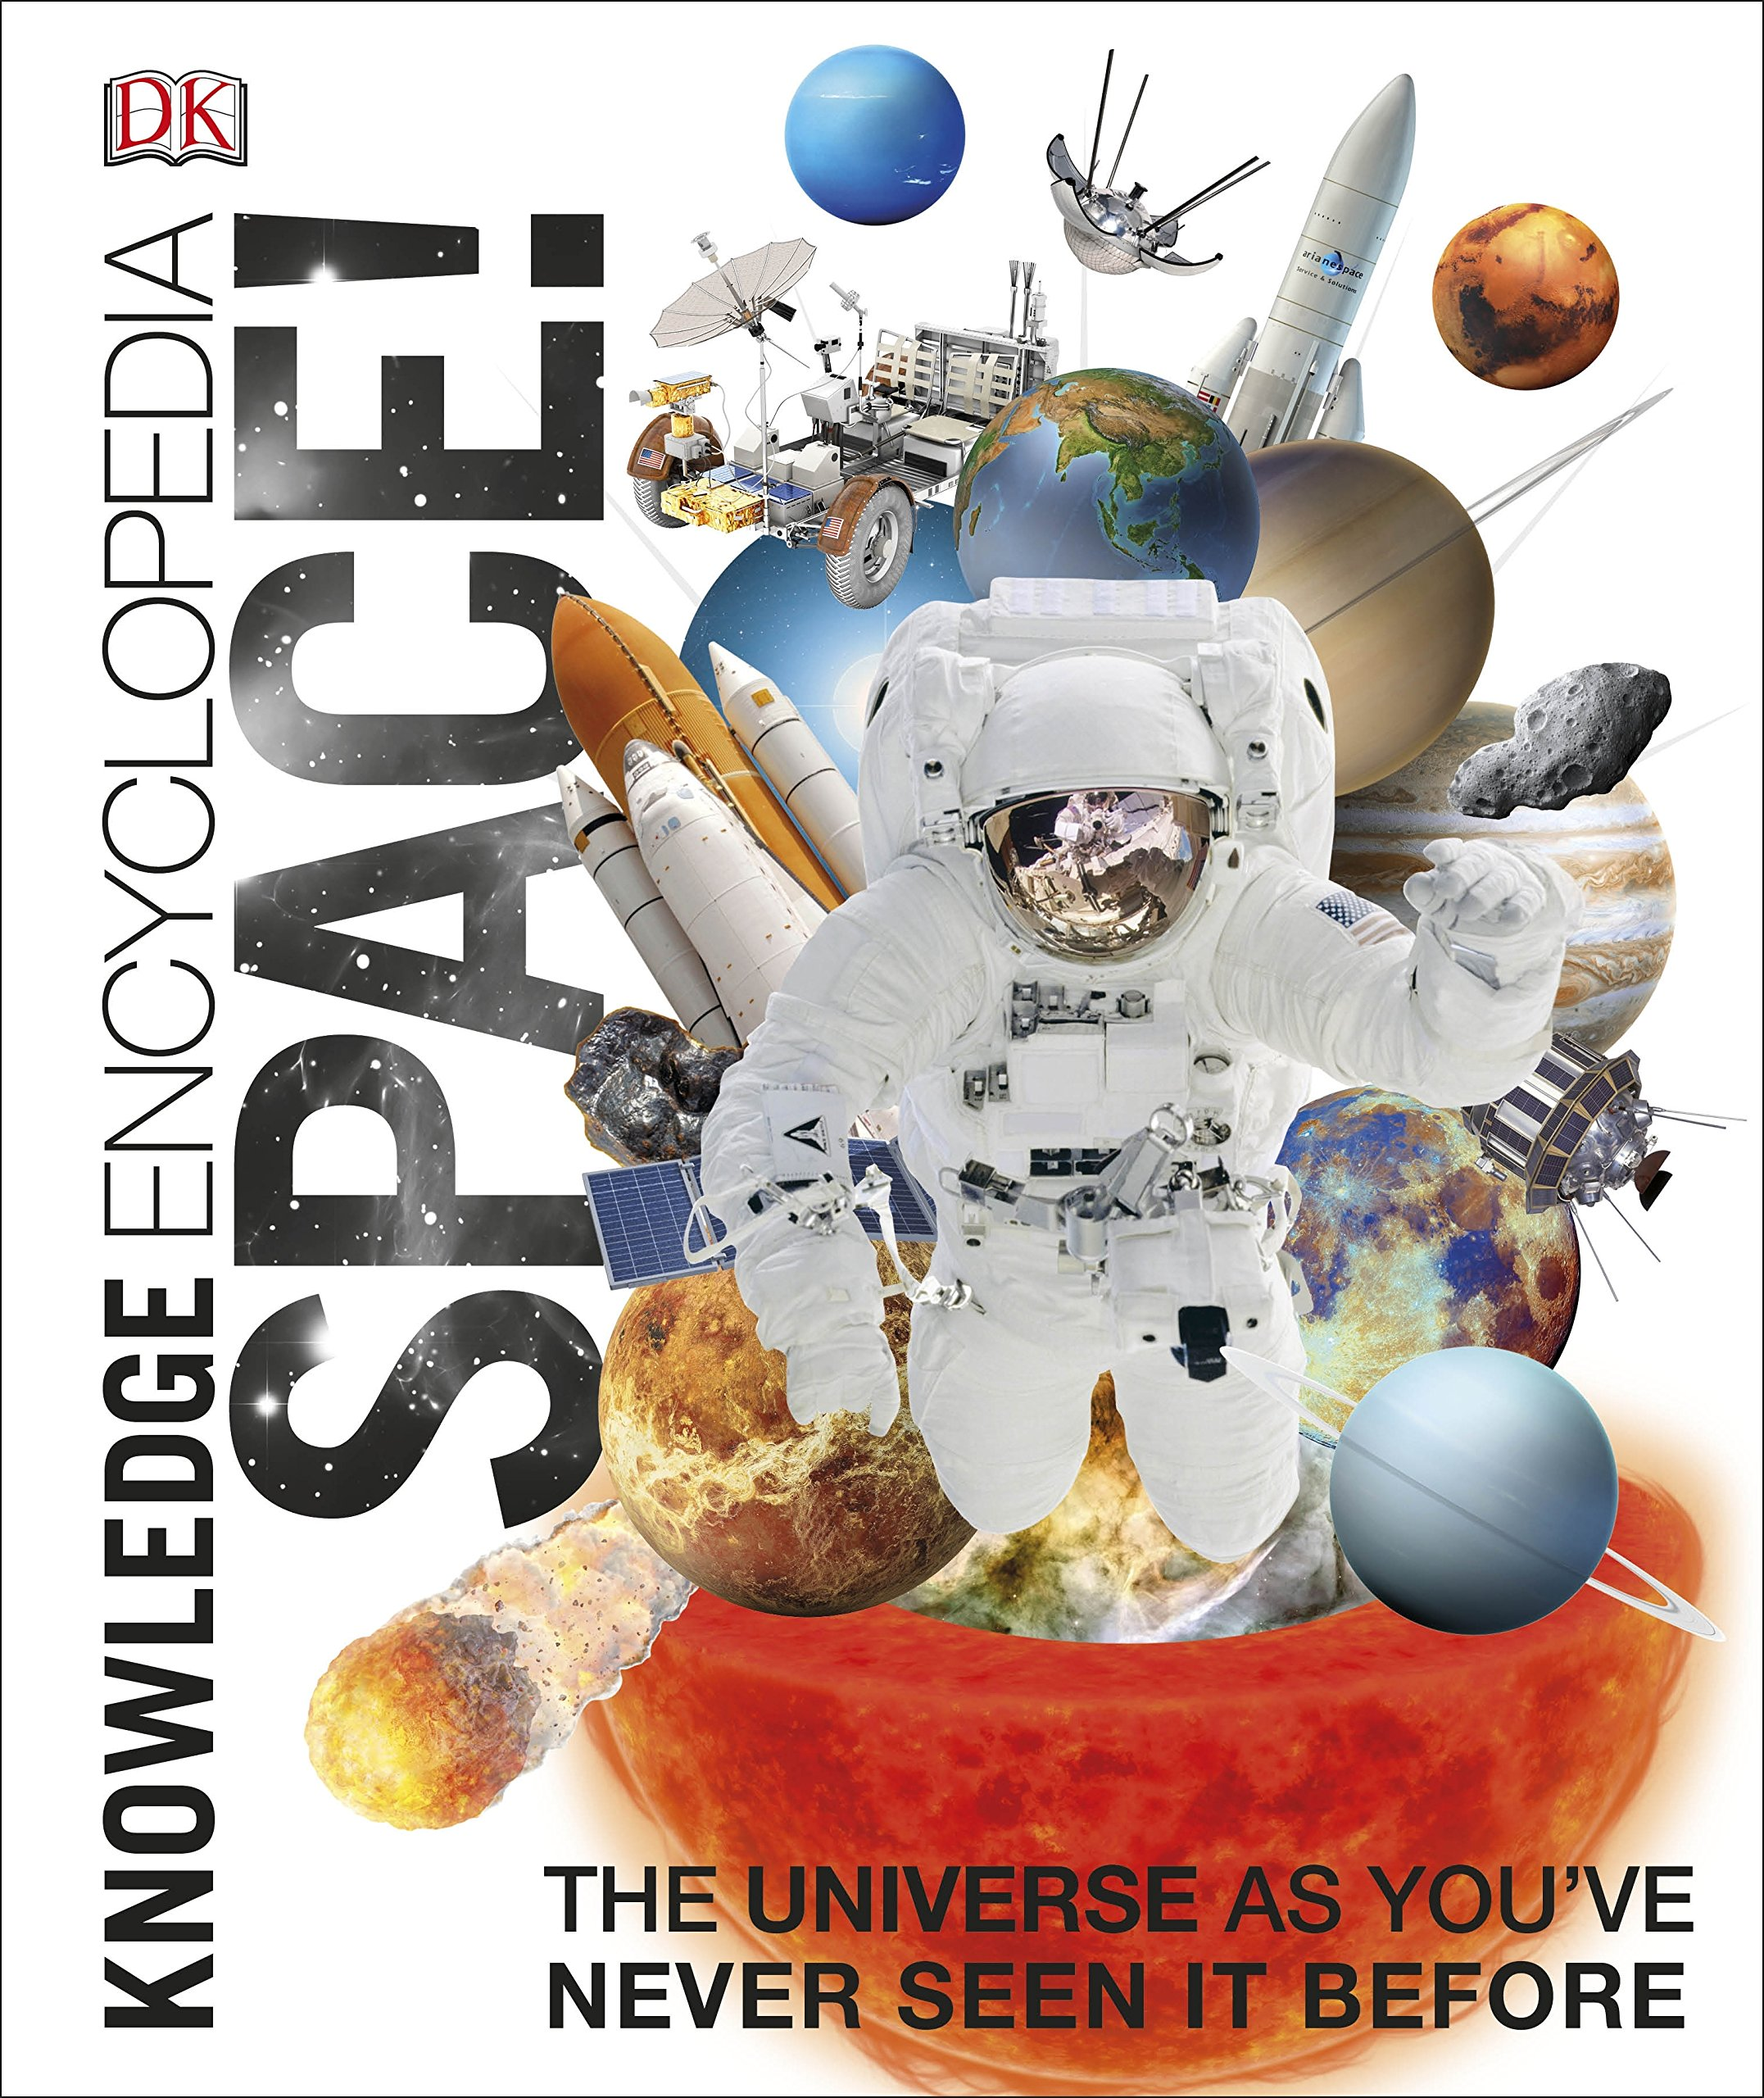 knwledge encyclopedia space book in free download